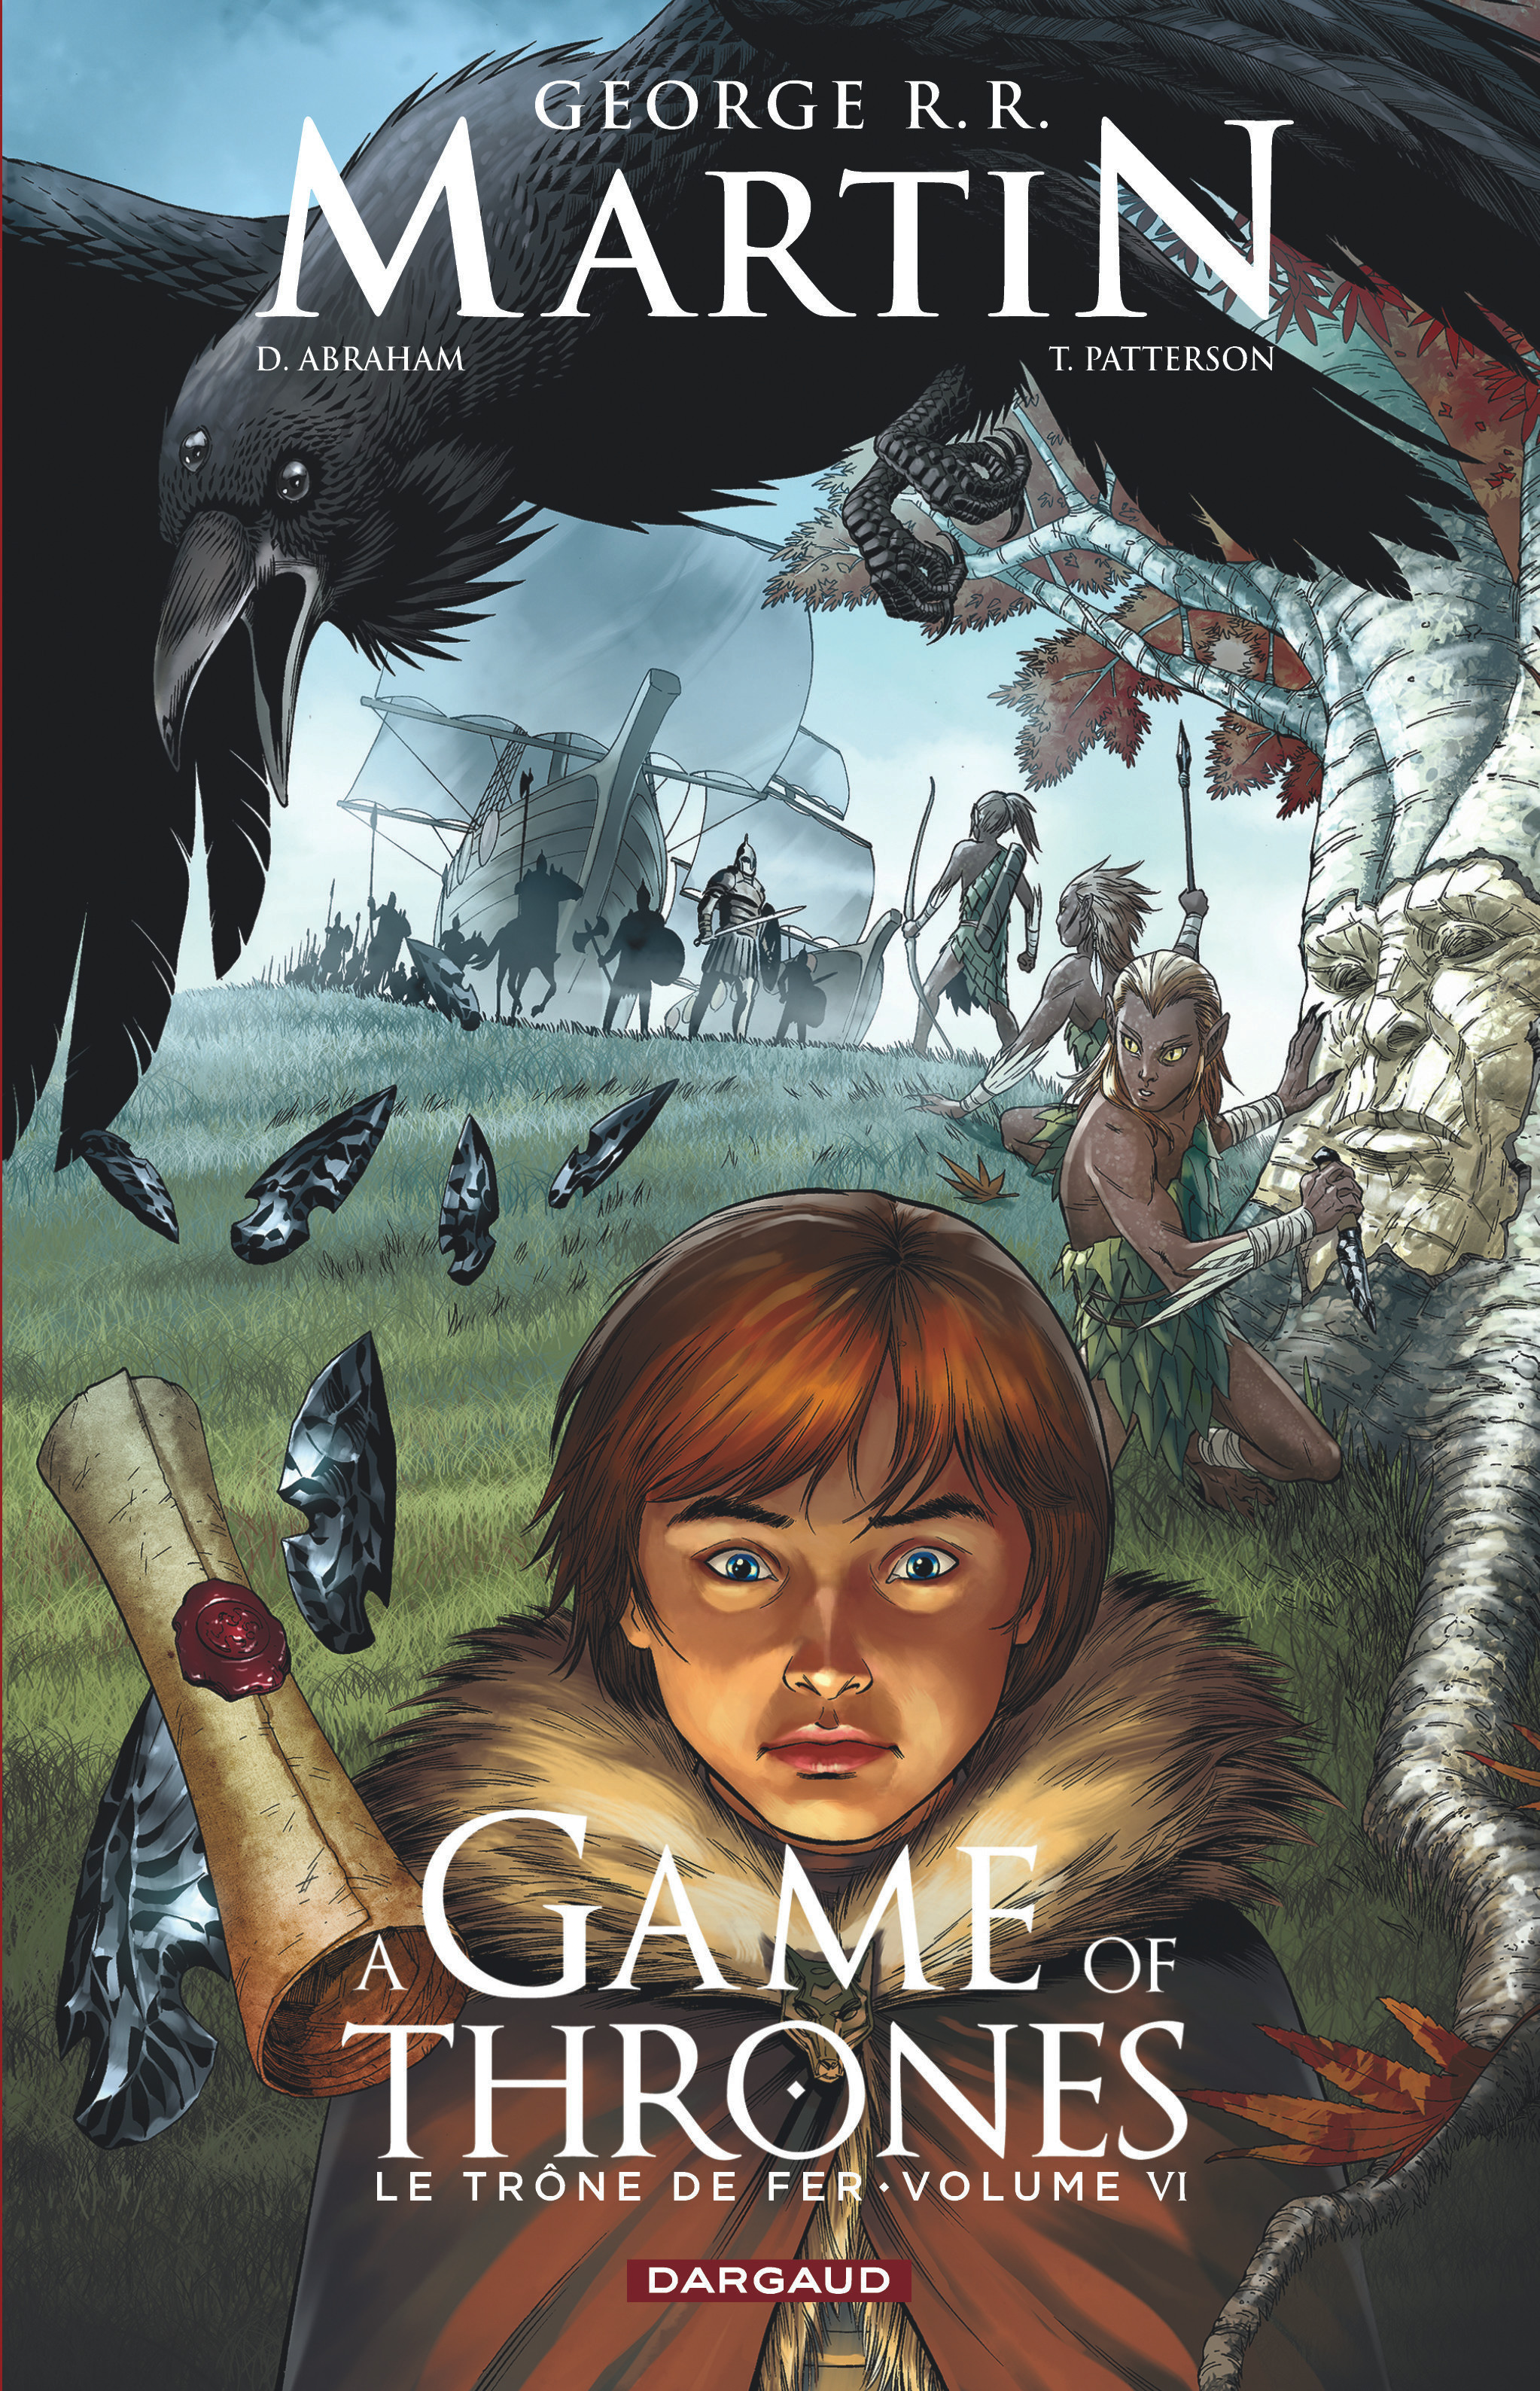 A GAME OF THRONES-LE TRONE FER - GAME OF THRONES (A) - LE TRONE DE FER - TOME 6 - A GAME OF THRO